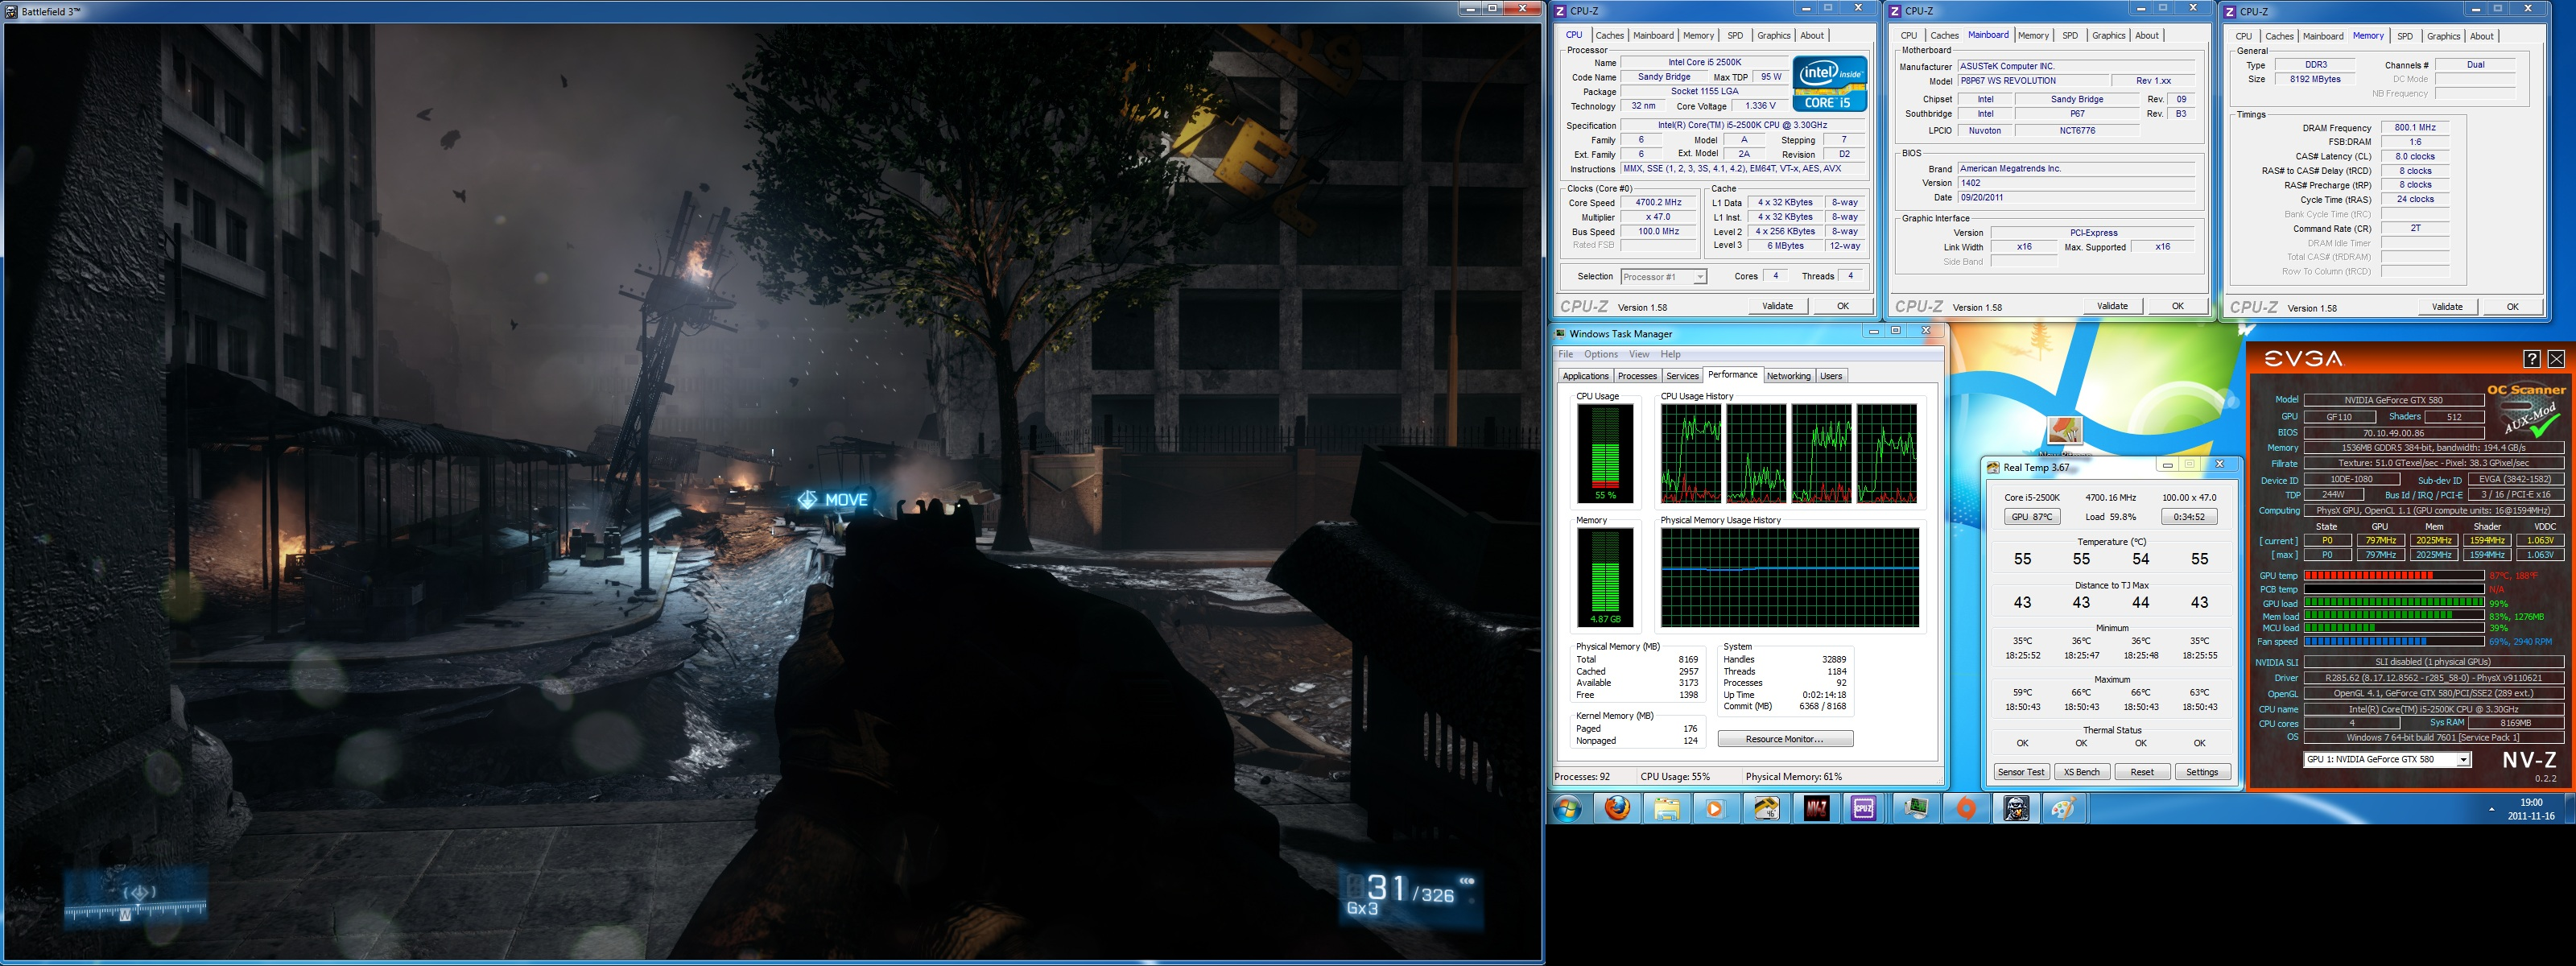 BF3 temperatures at load in windowed mode with older and hotter OC profile.